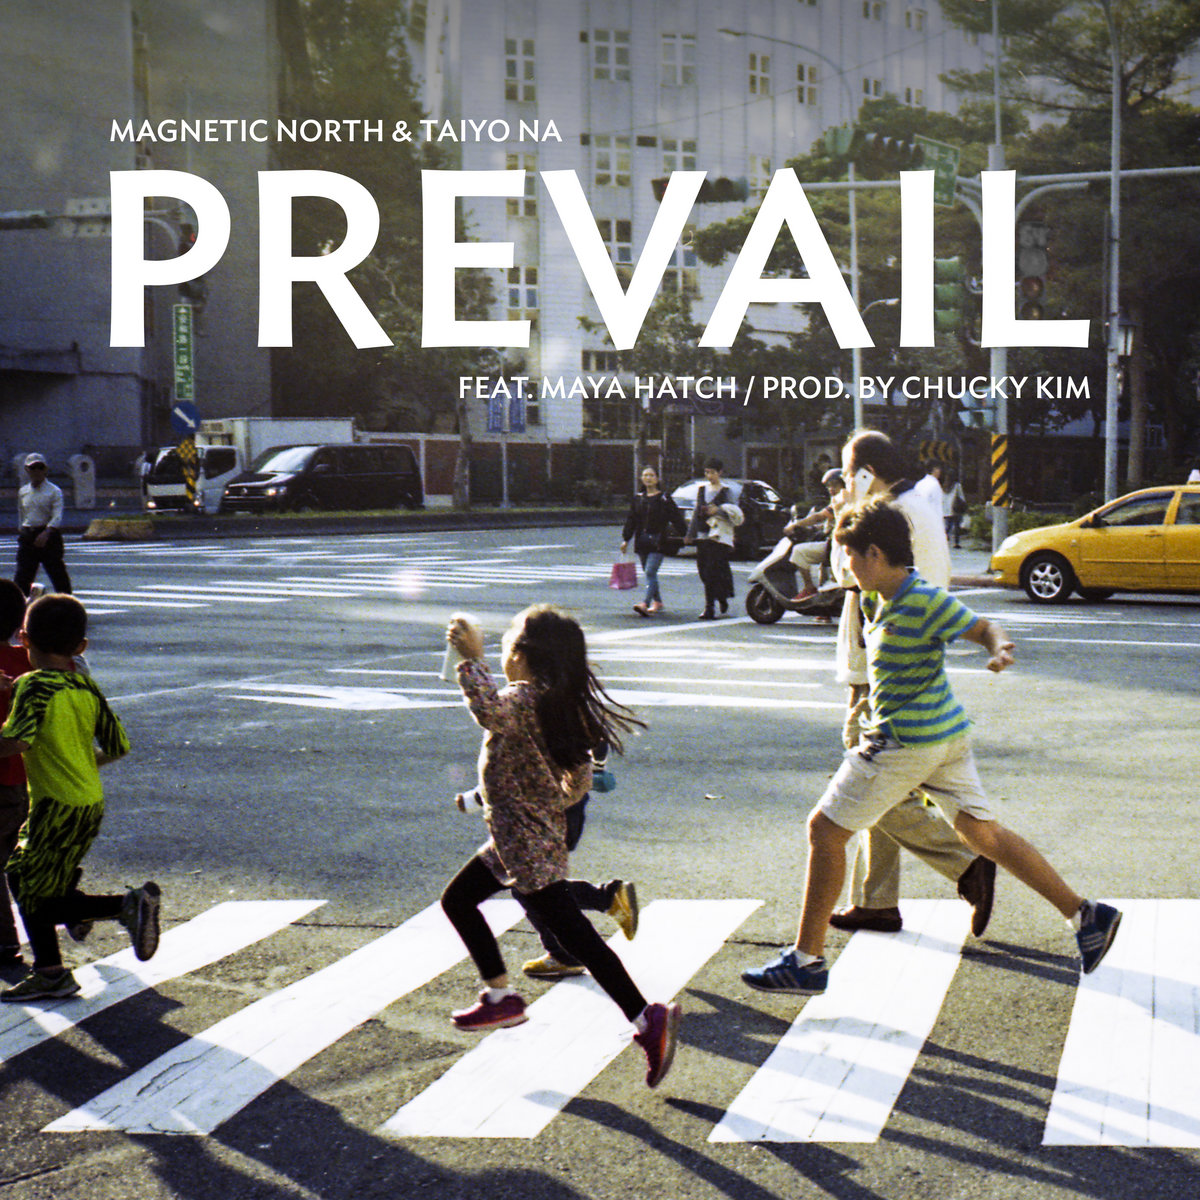 Prevail [ft  Maya Hatch / prod  by Chucky Kim] | Magnetic North